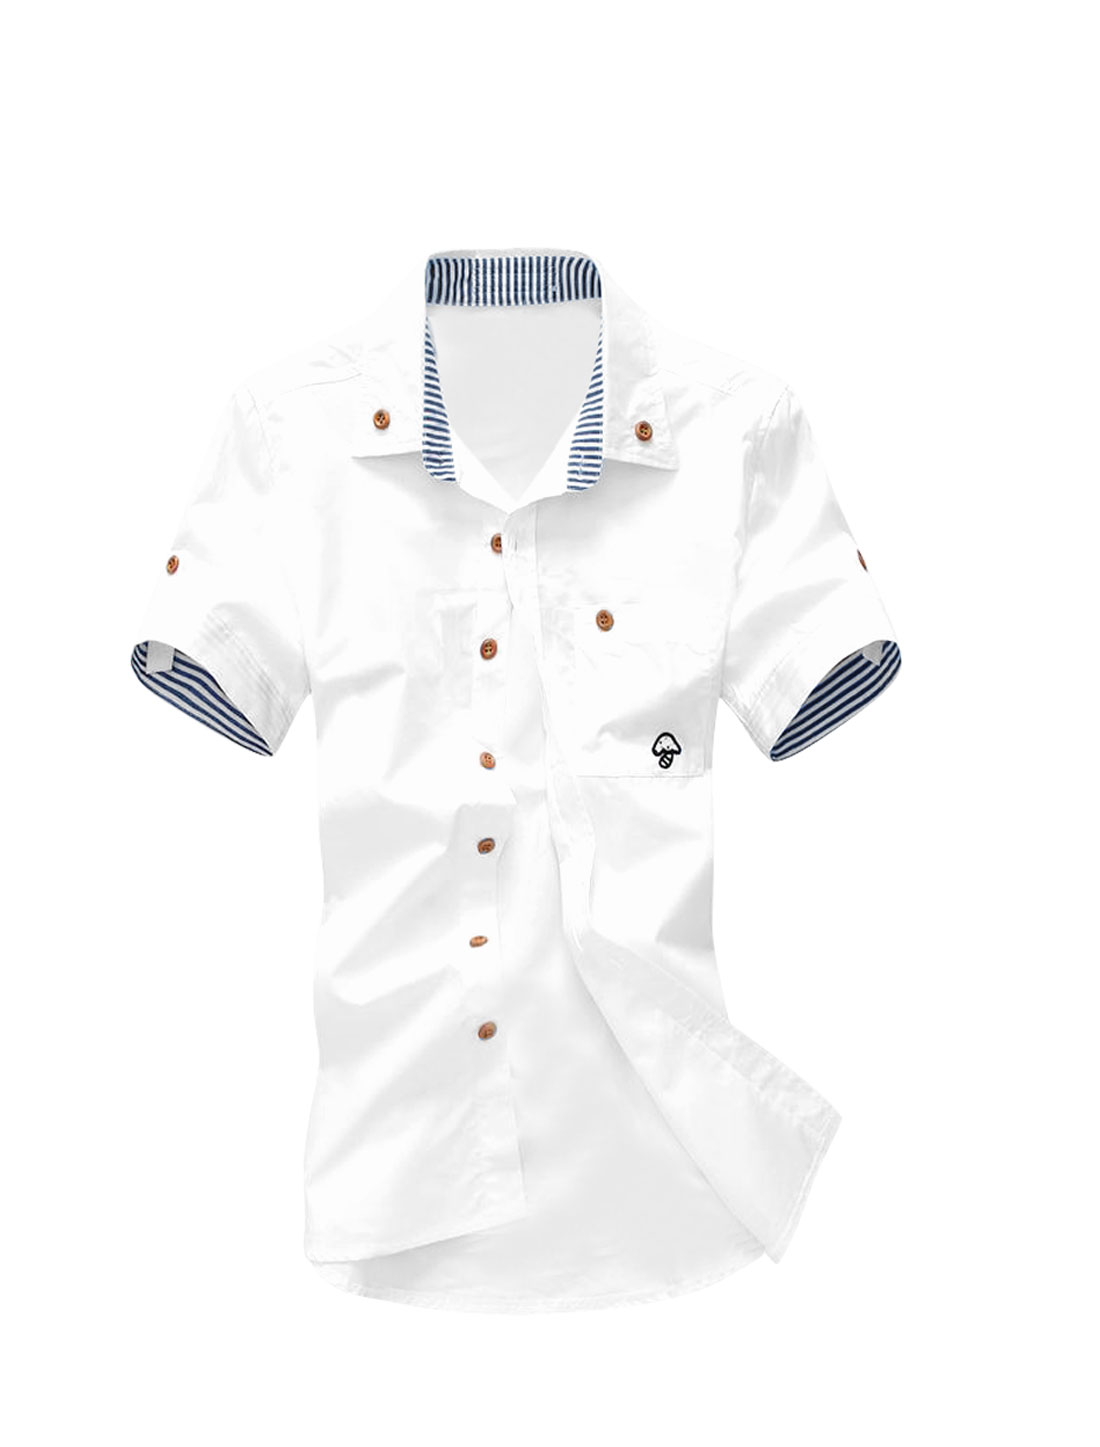 Mens Casual NEW Stylish White Single Breasted Trendy Summer Shirt Tops XS